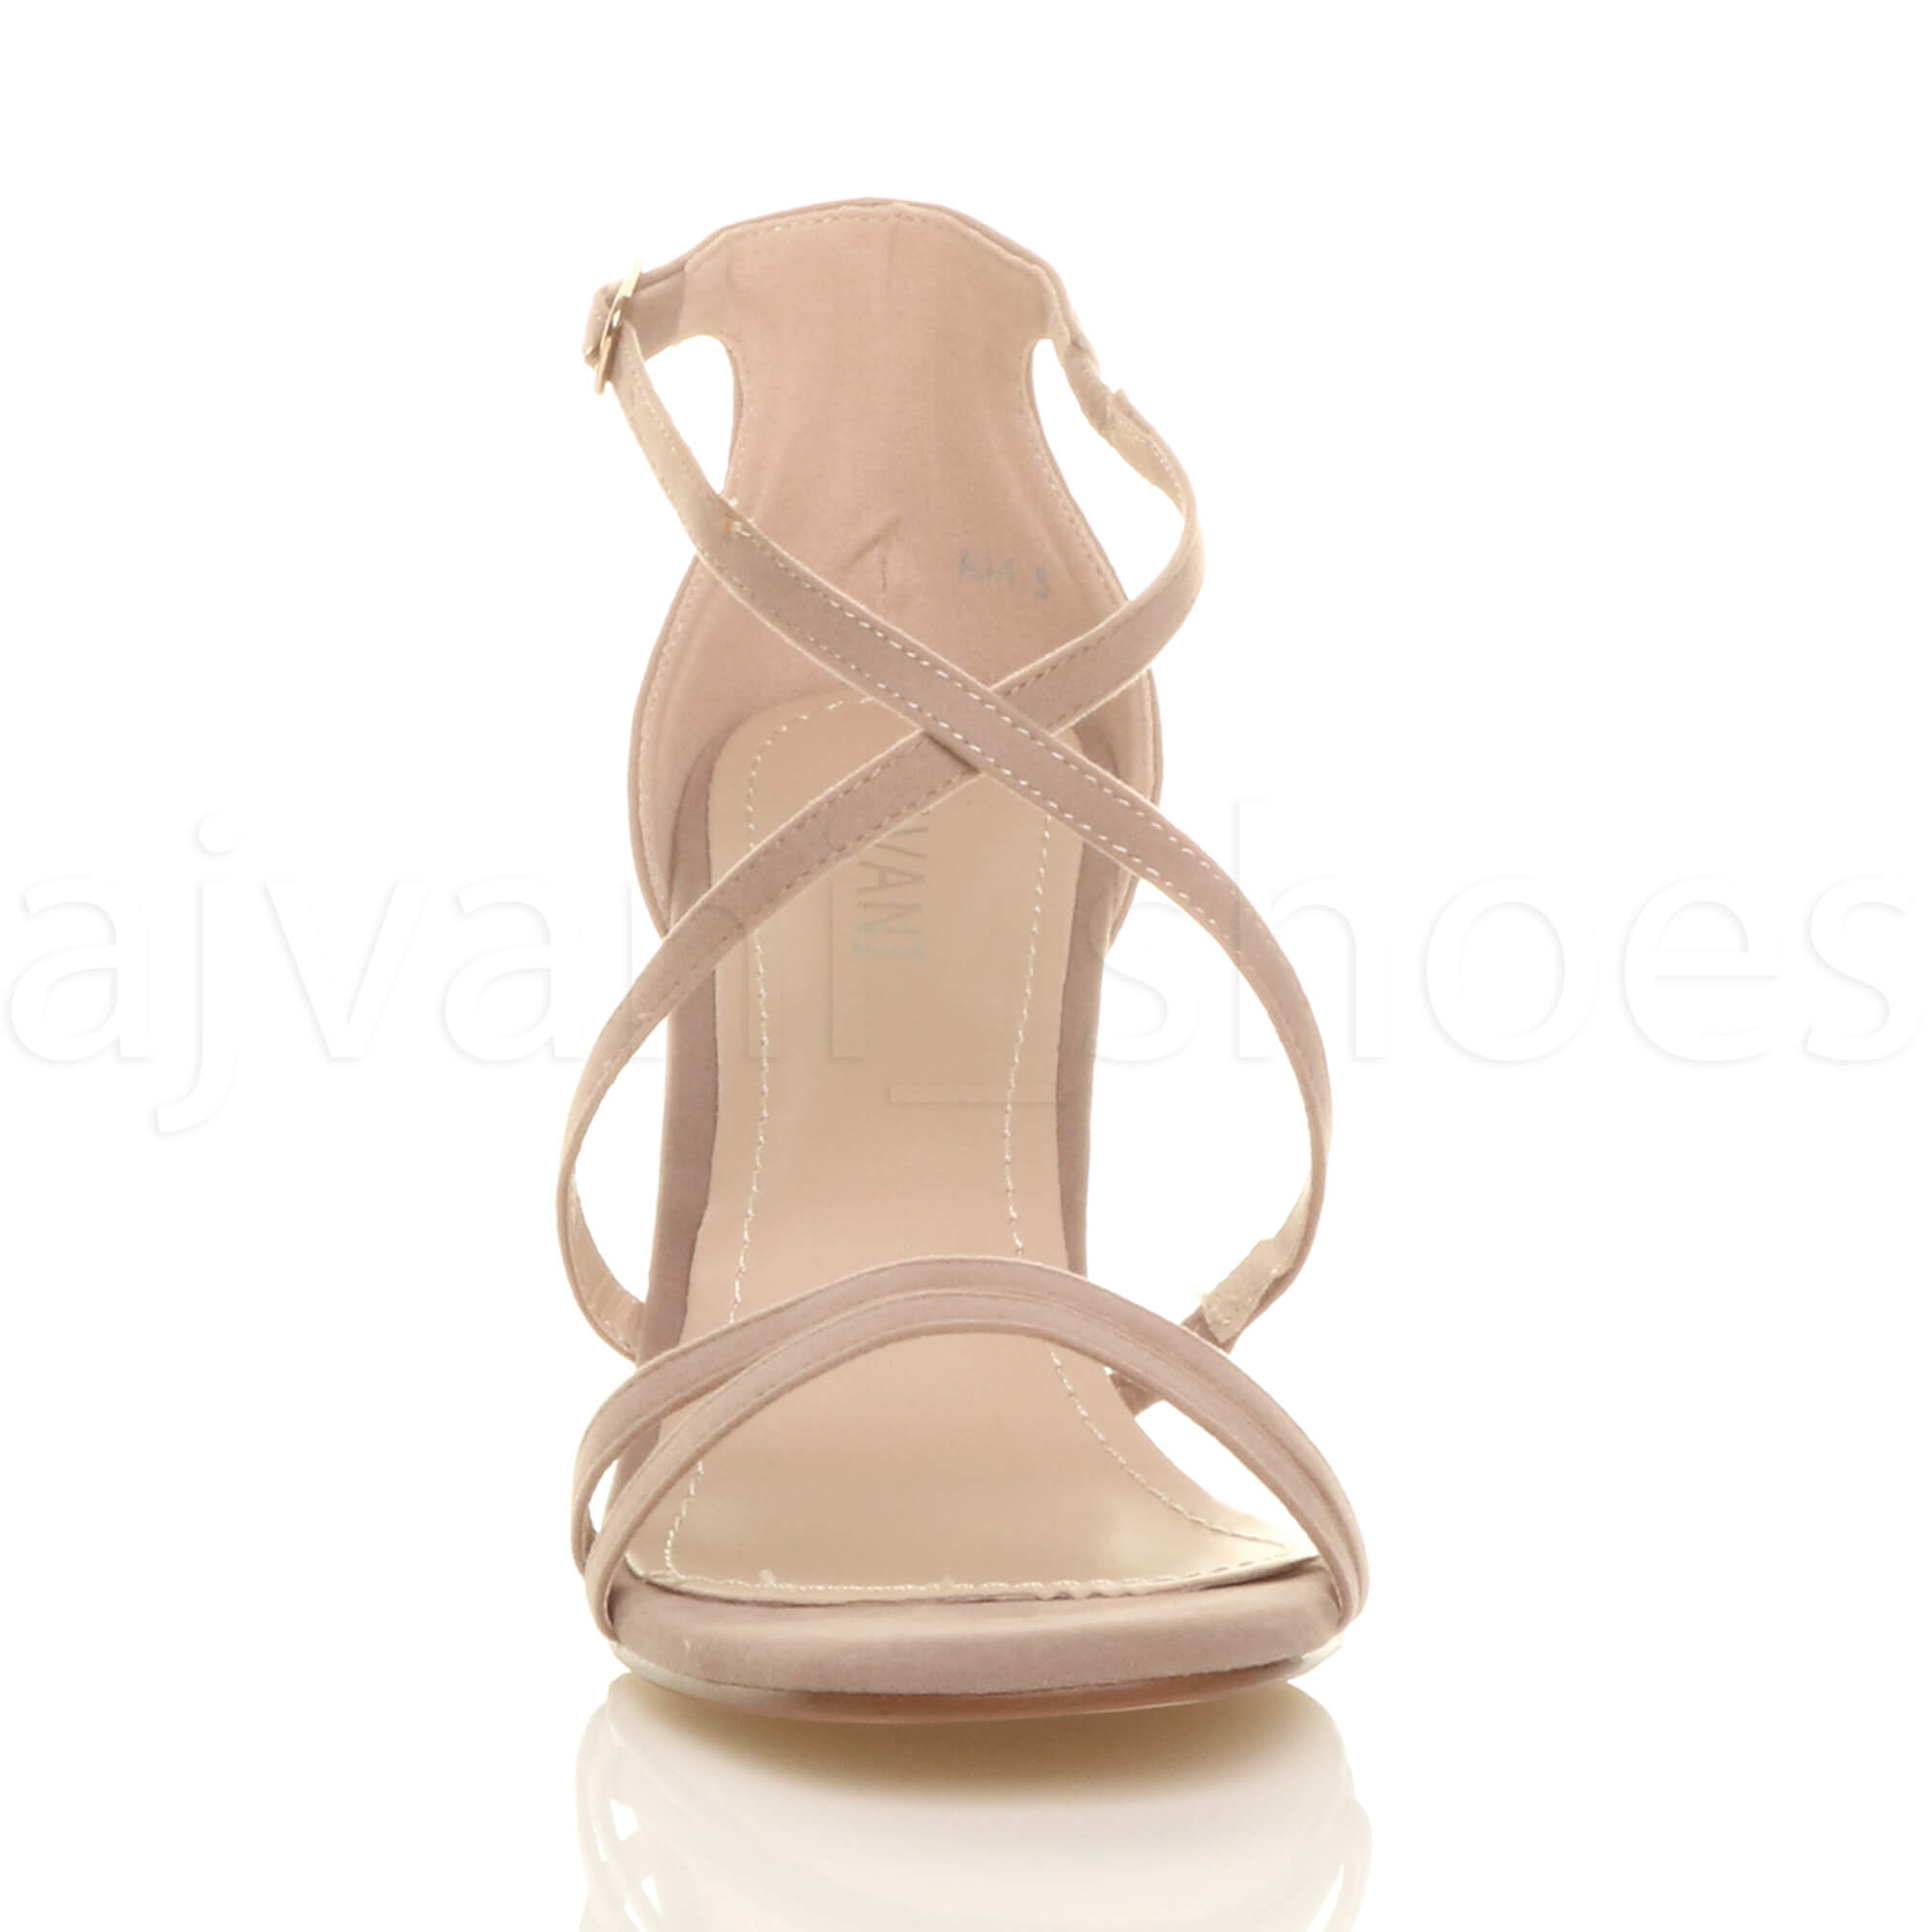 WOMENS-LADIES-MID-HIGH-HEEL-STRAPPY-CROSSOVER-WEDDING-PROM-SANDALS-SHOES-SIZE thumbnail 118